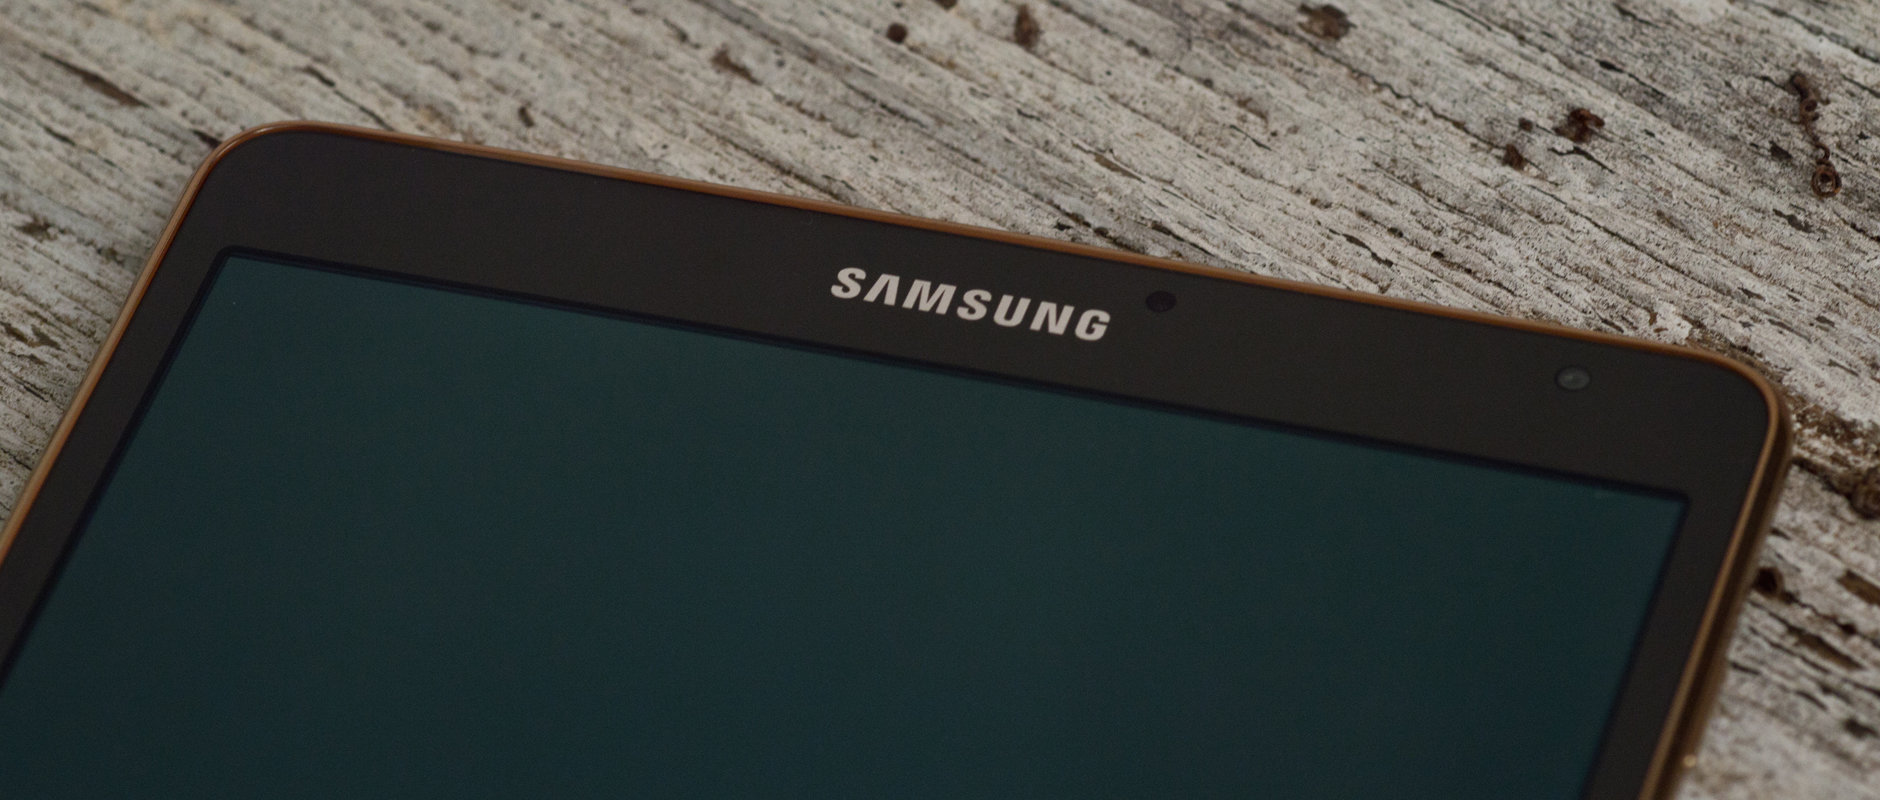 A photograph of the Samsung Galaxy Tab S 8.4's front.